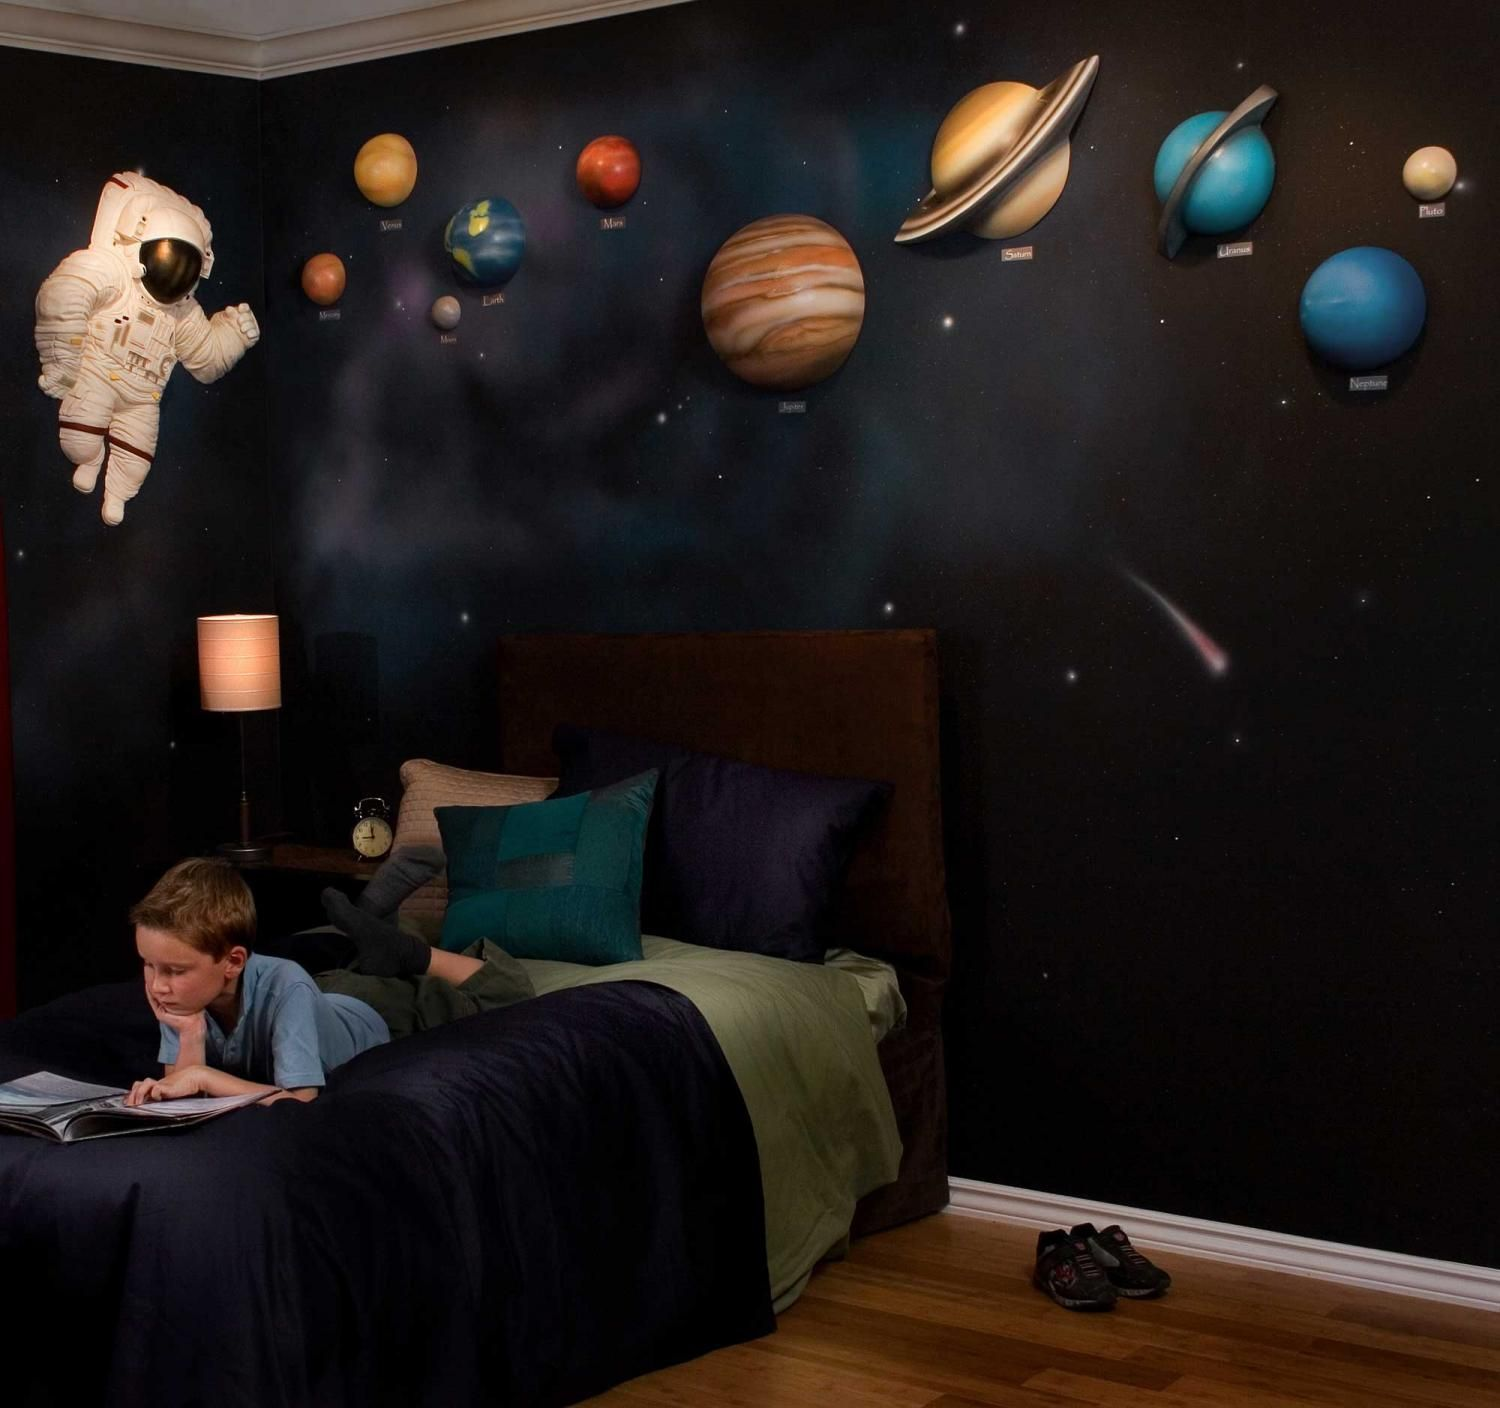 astronaut bedroom ideas - photo #10